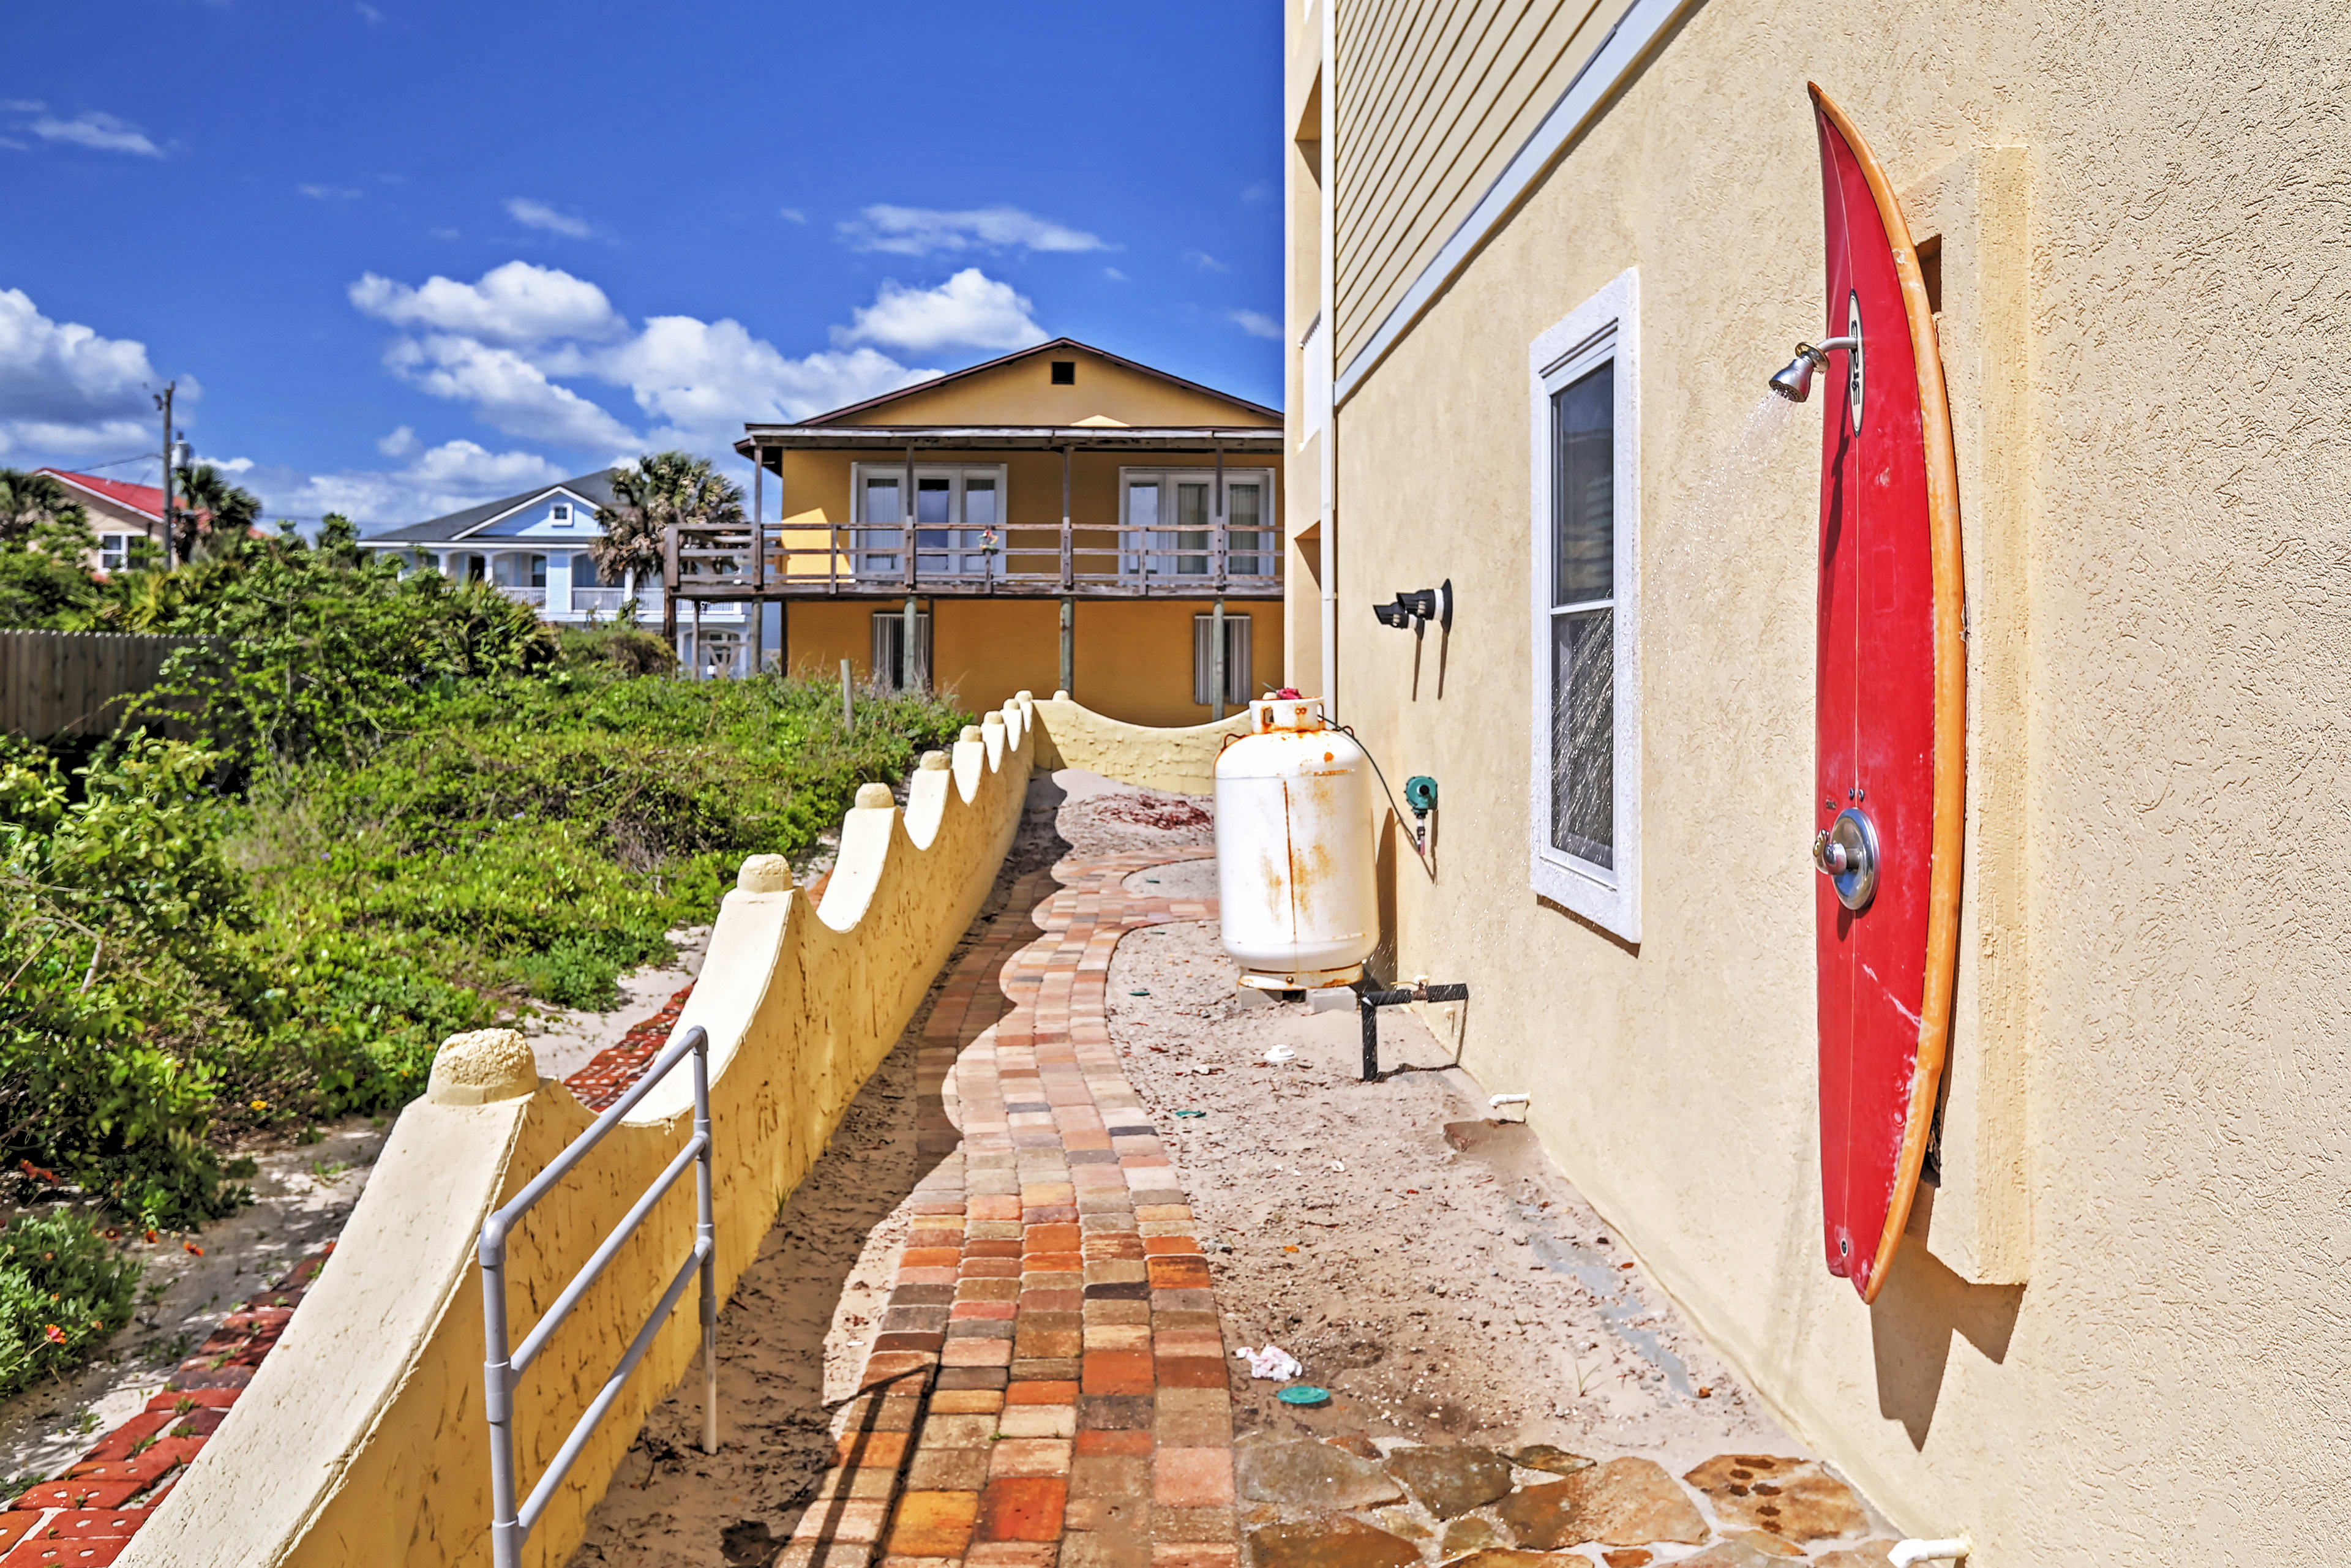 Shower off the sand from your day at the beach under this unique outdoor shower!